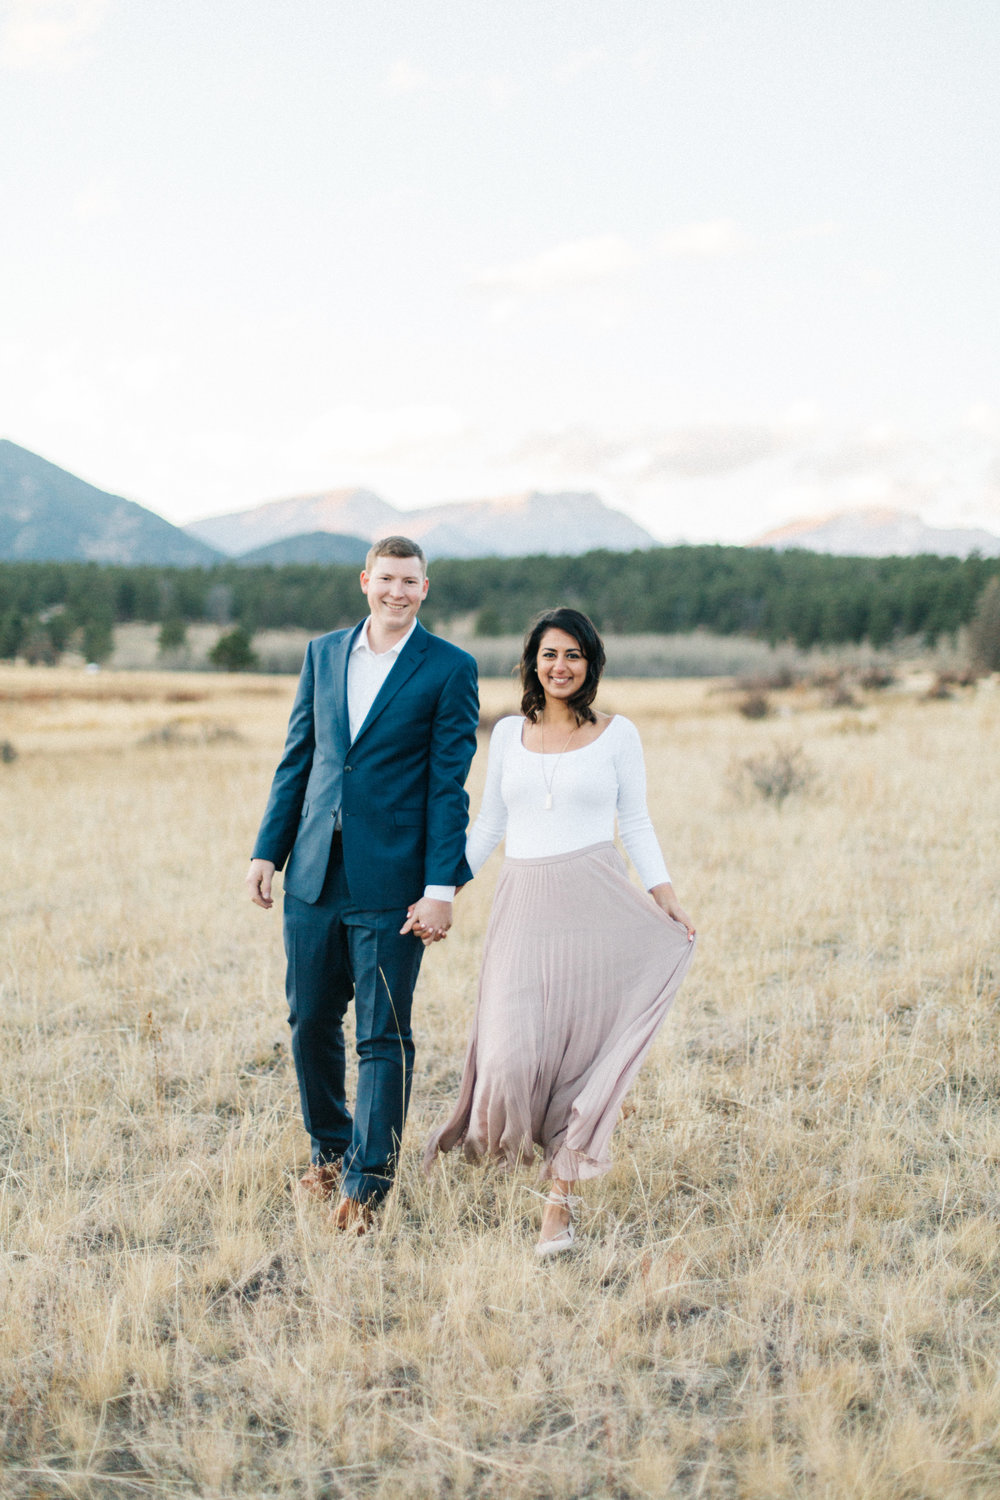 Emily Sacco Is a Fine Art Colorado Wedding photographer.